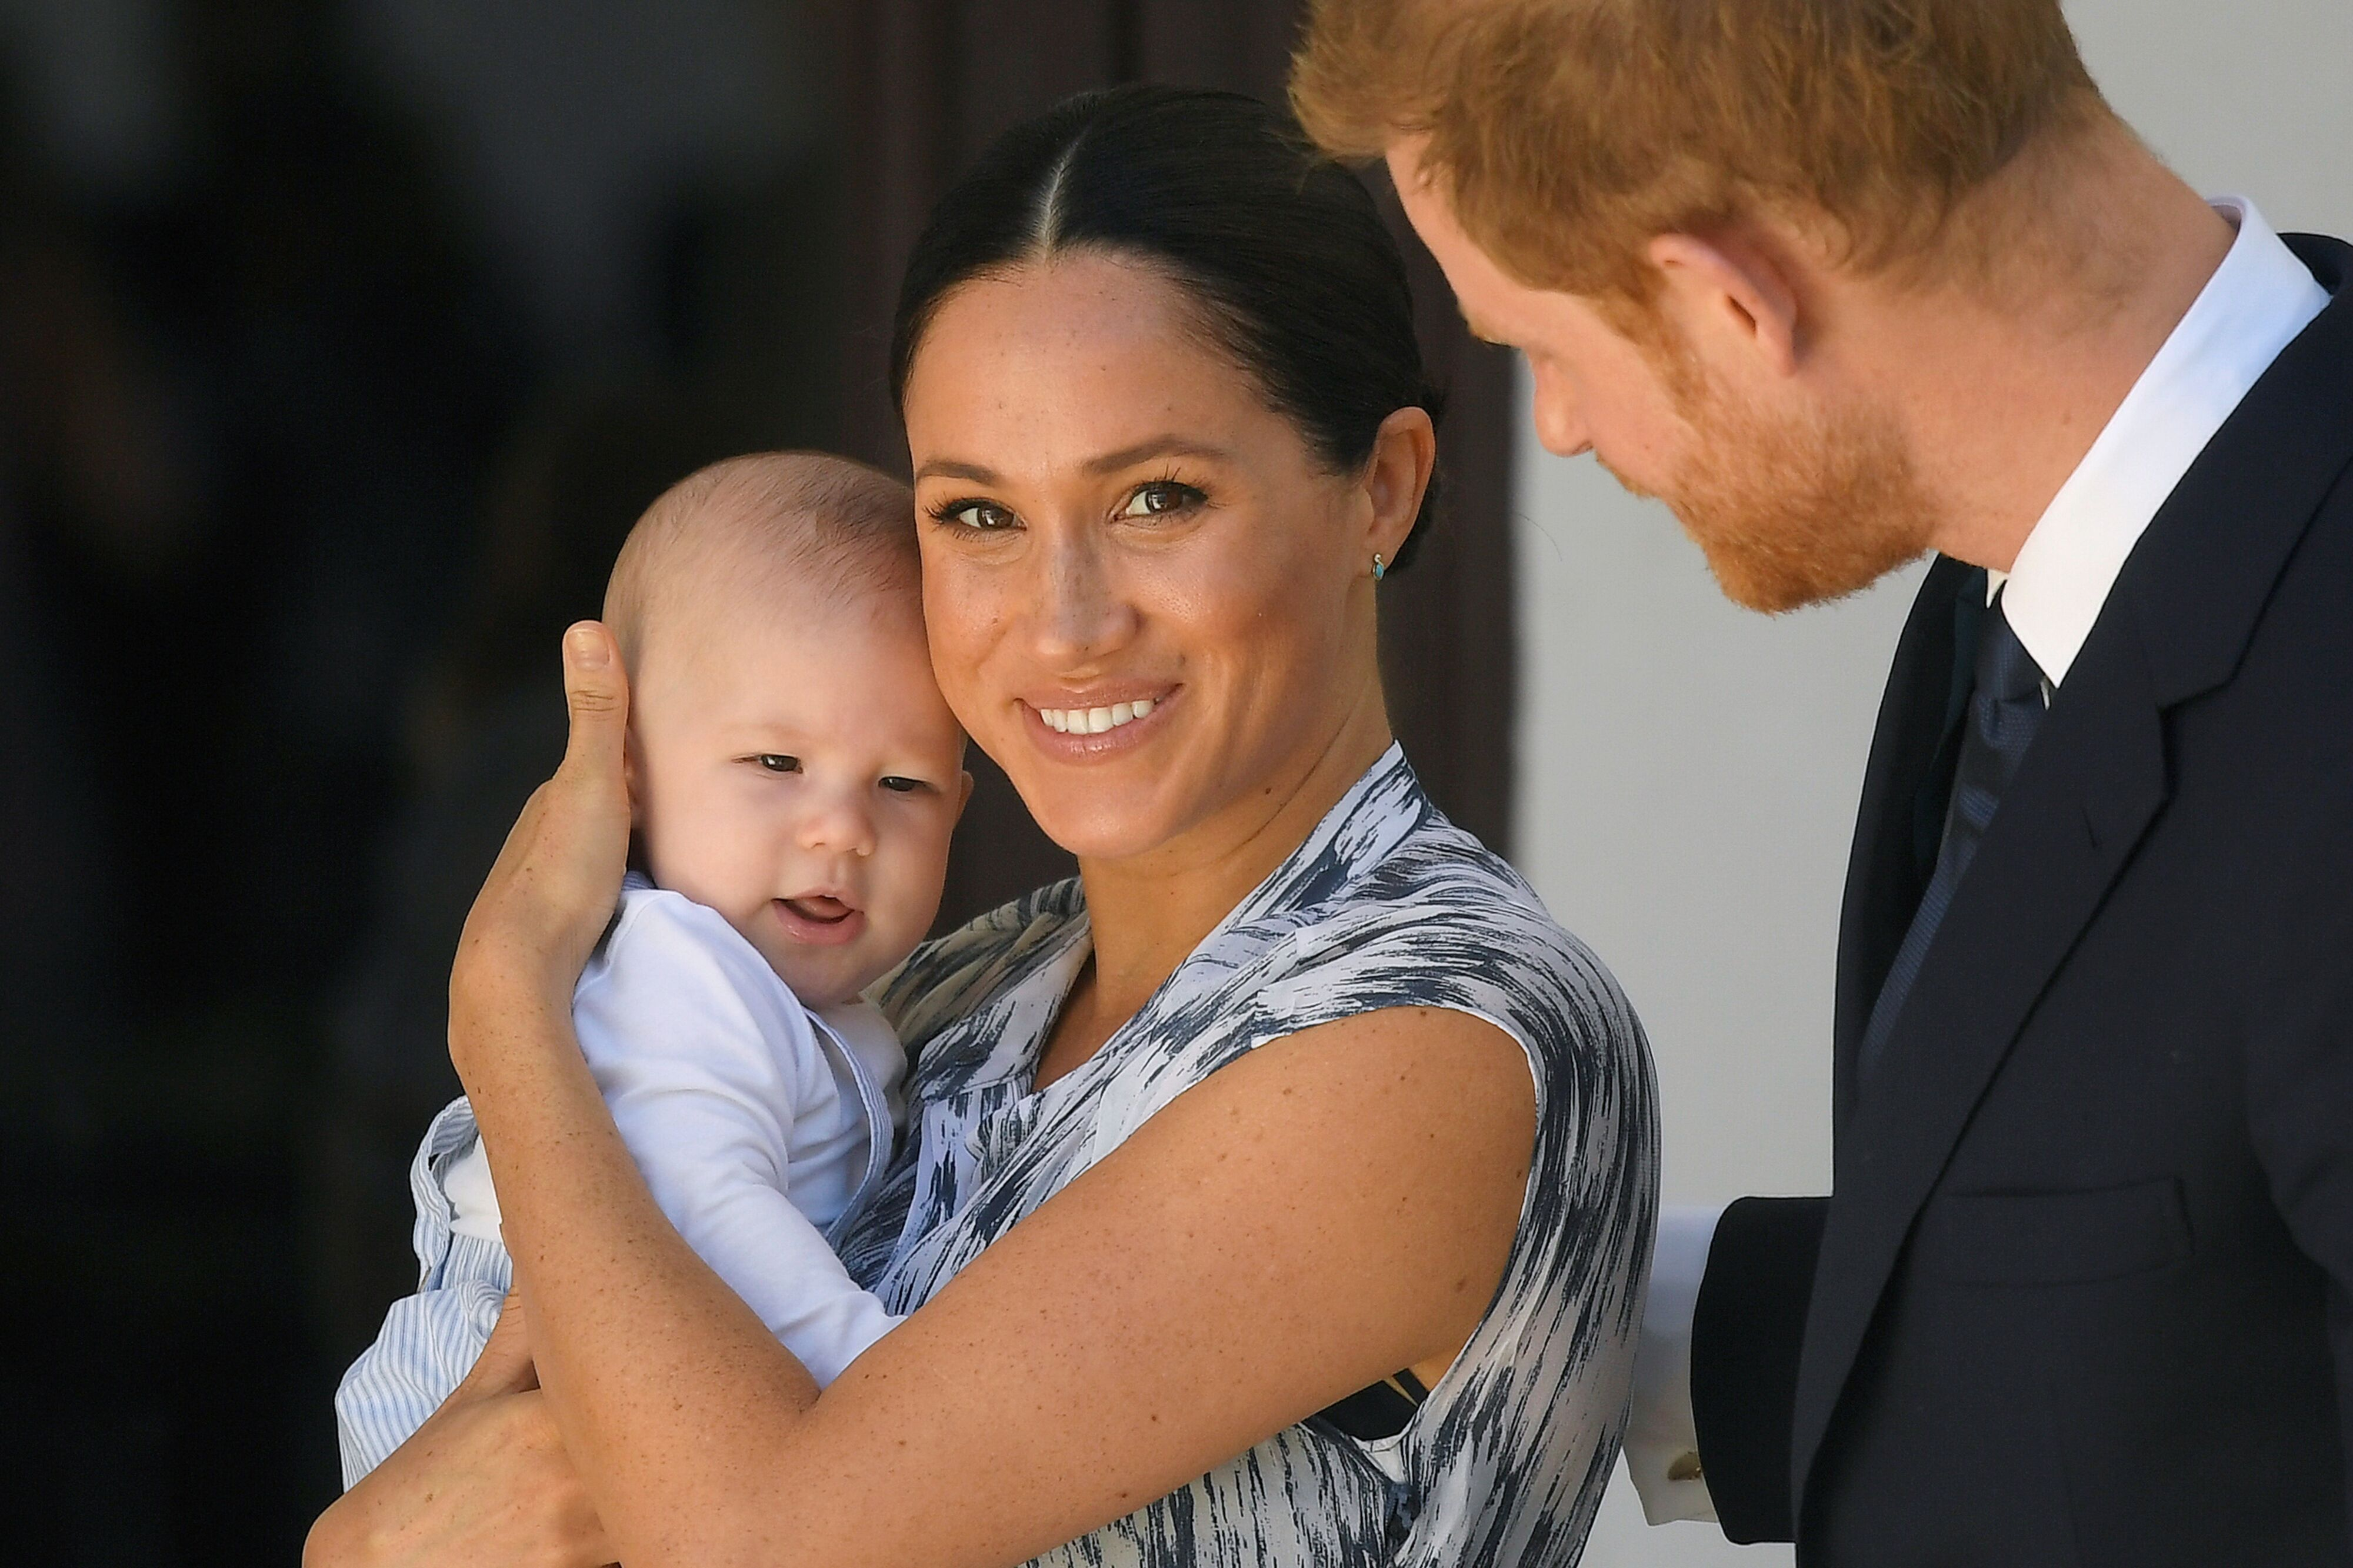 Prince Harry, Meghan Markle, and baby Archie at a meeting with Archbishop Desmond Tutu. | Source: Getty Images